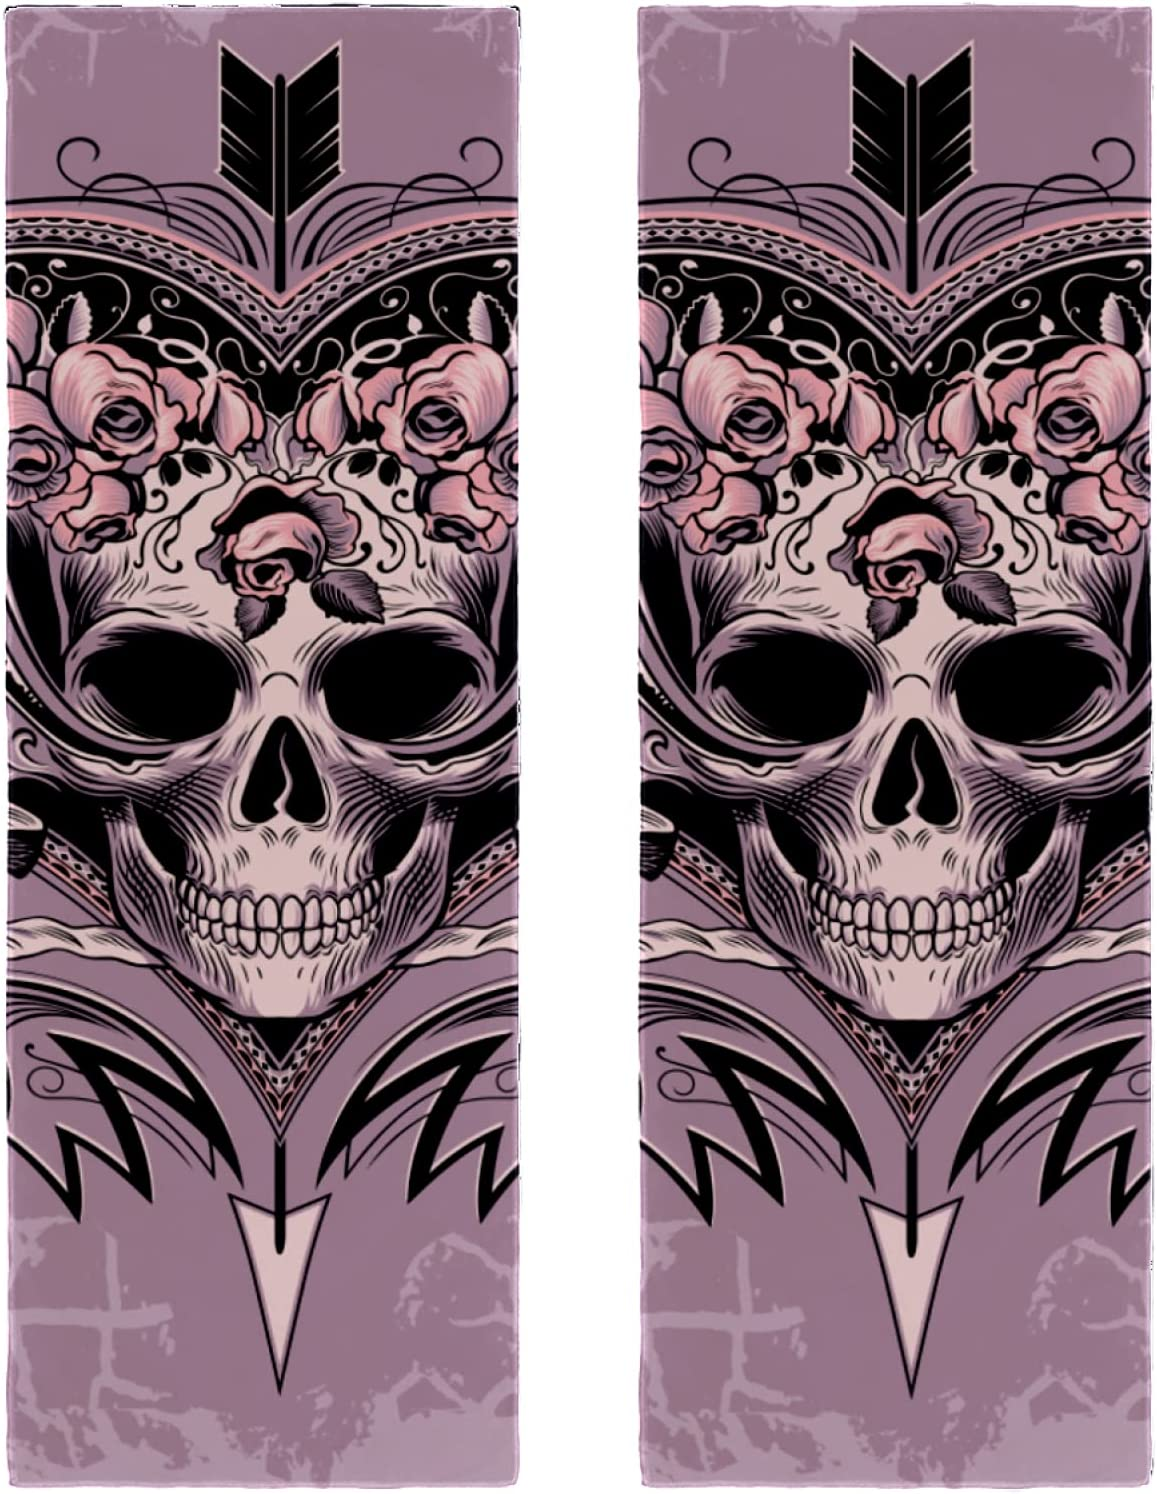 2 Packs Yoga Towel for Ranking TOP3 Gym Hear and Travel Beach Skull Camping 2021 new